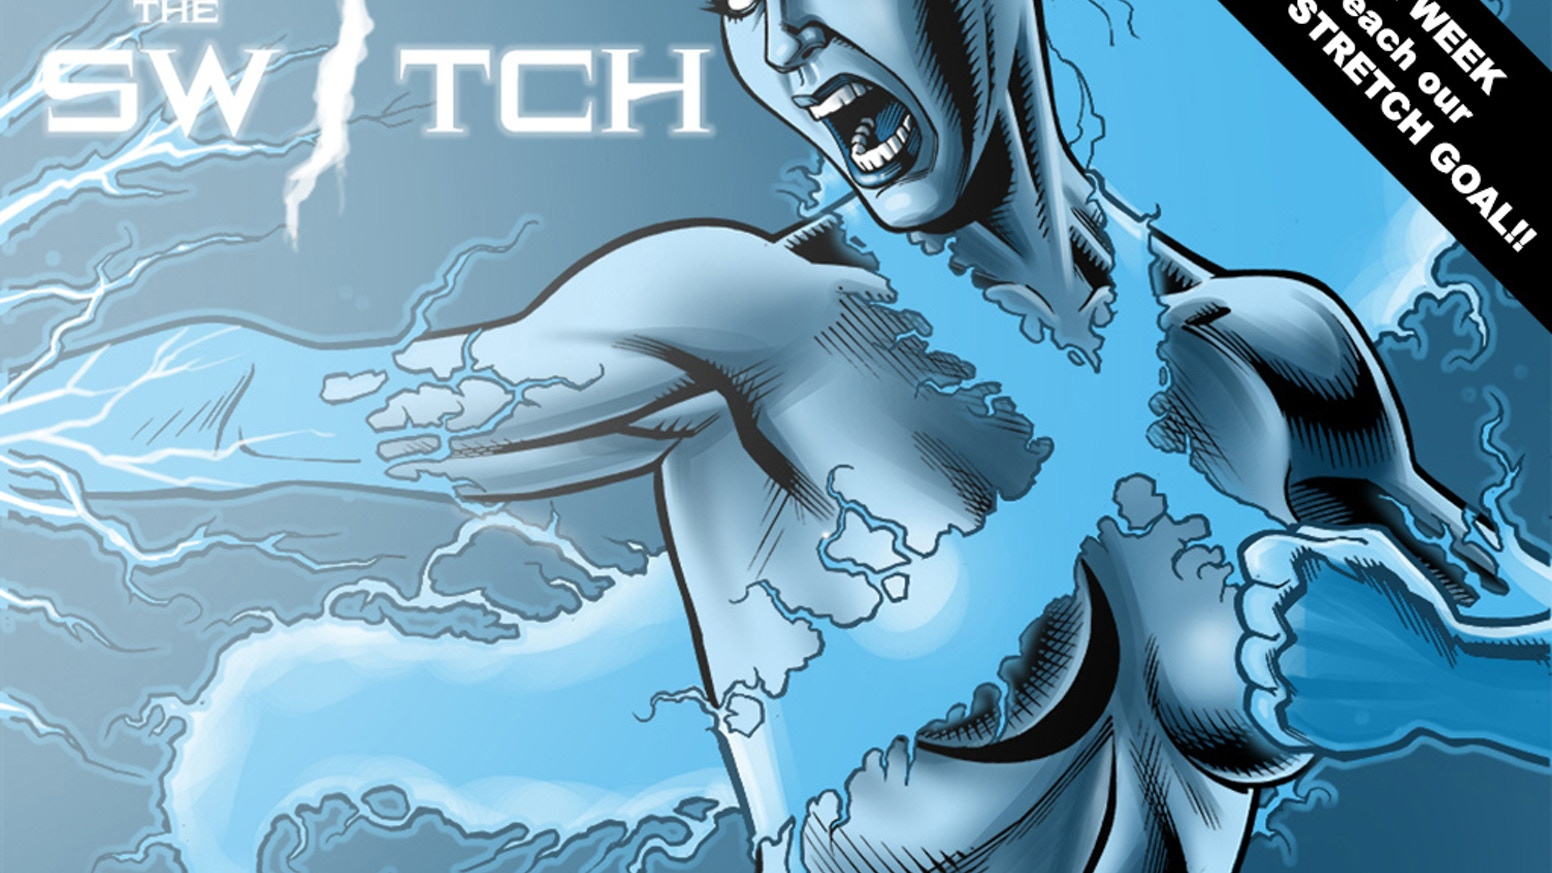 For a supervillain, growing apart from your friends can be murder. THE SWITCH! A graphic novel by Keith Champagne and Tom Nguyen.